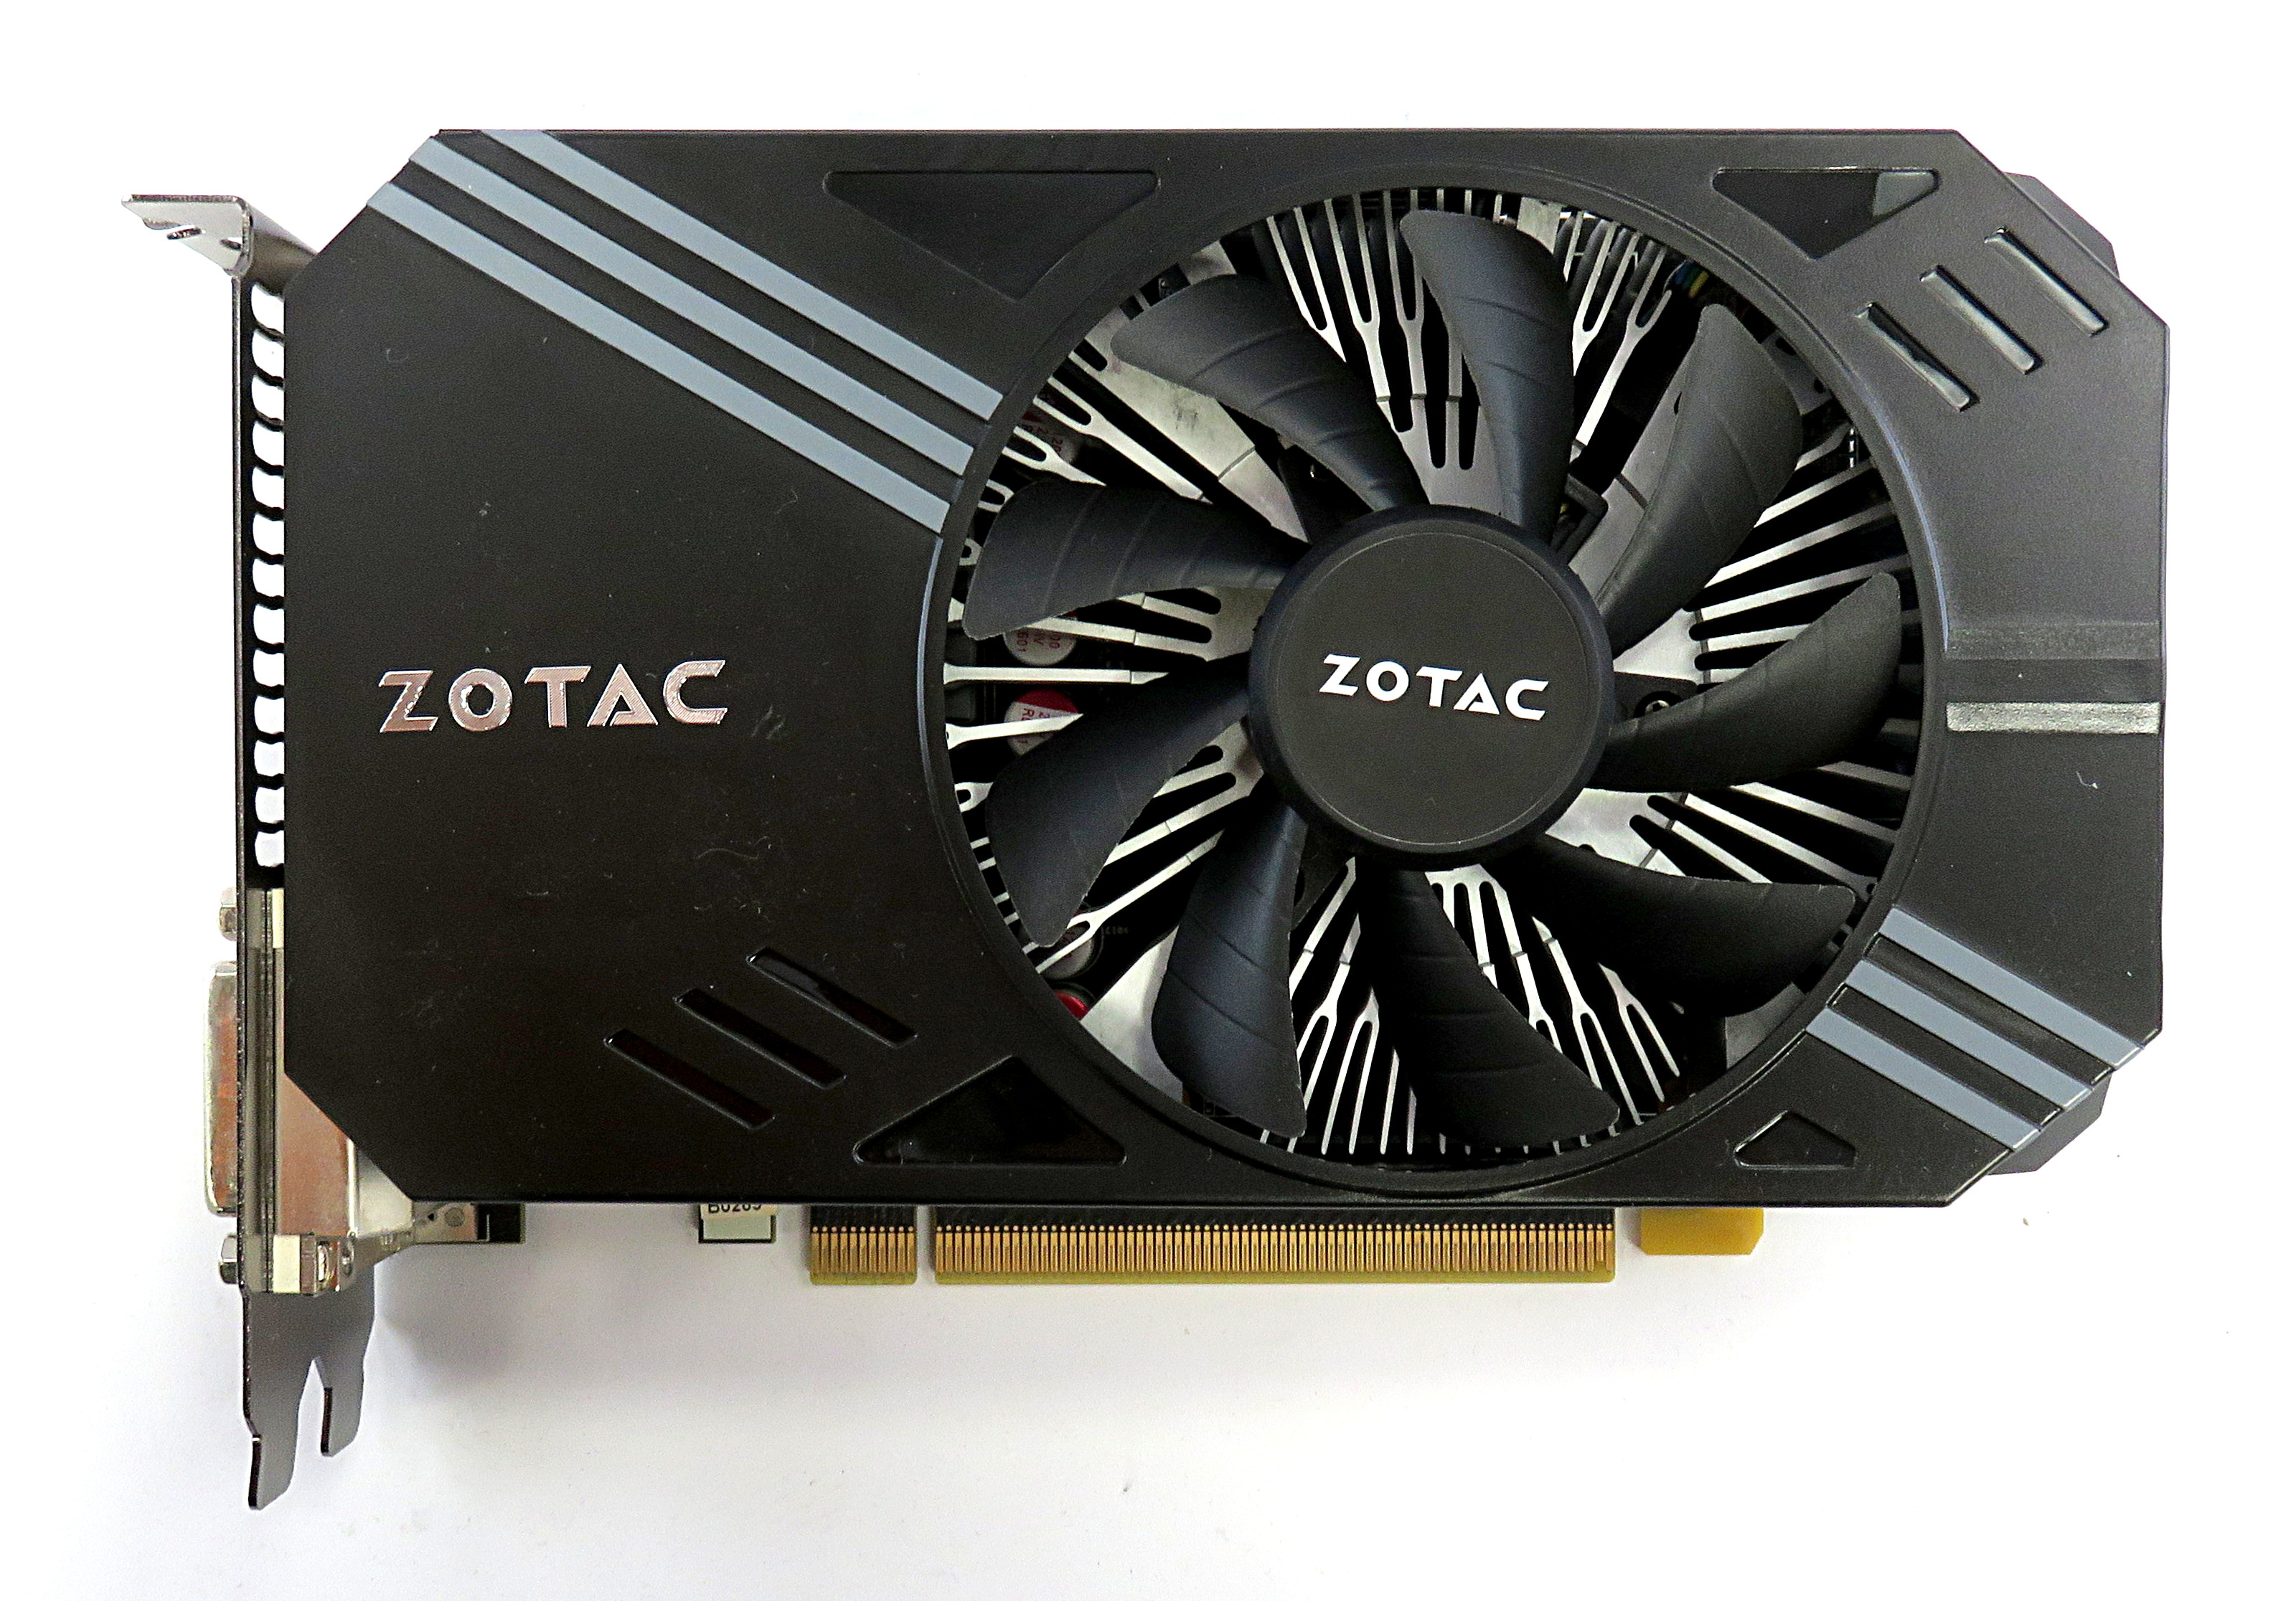 Zotac nVidia GTX 950 Mini 2GB GDDR5 Graphics Card 288-3N376-320Z8 DP/HDMI/2xDVI